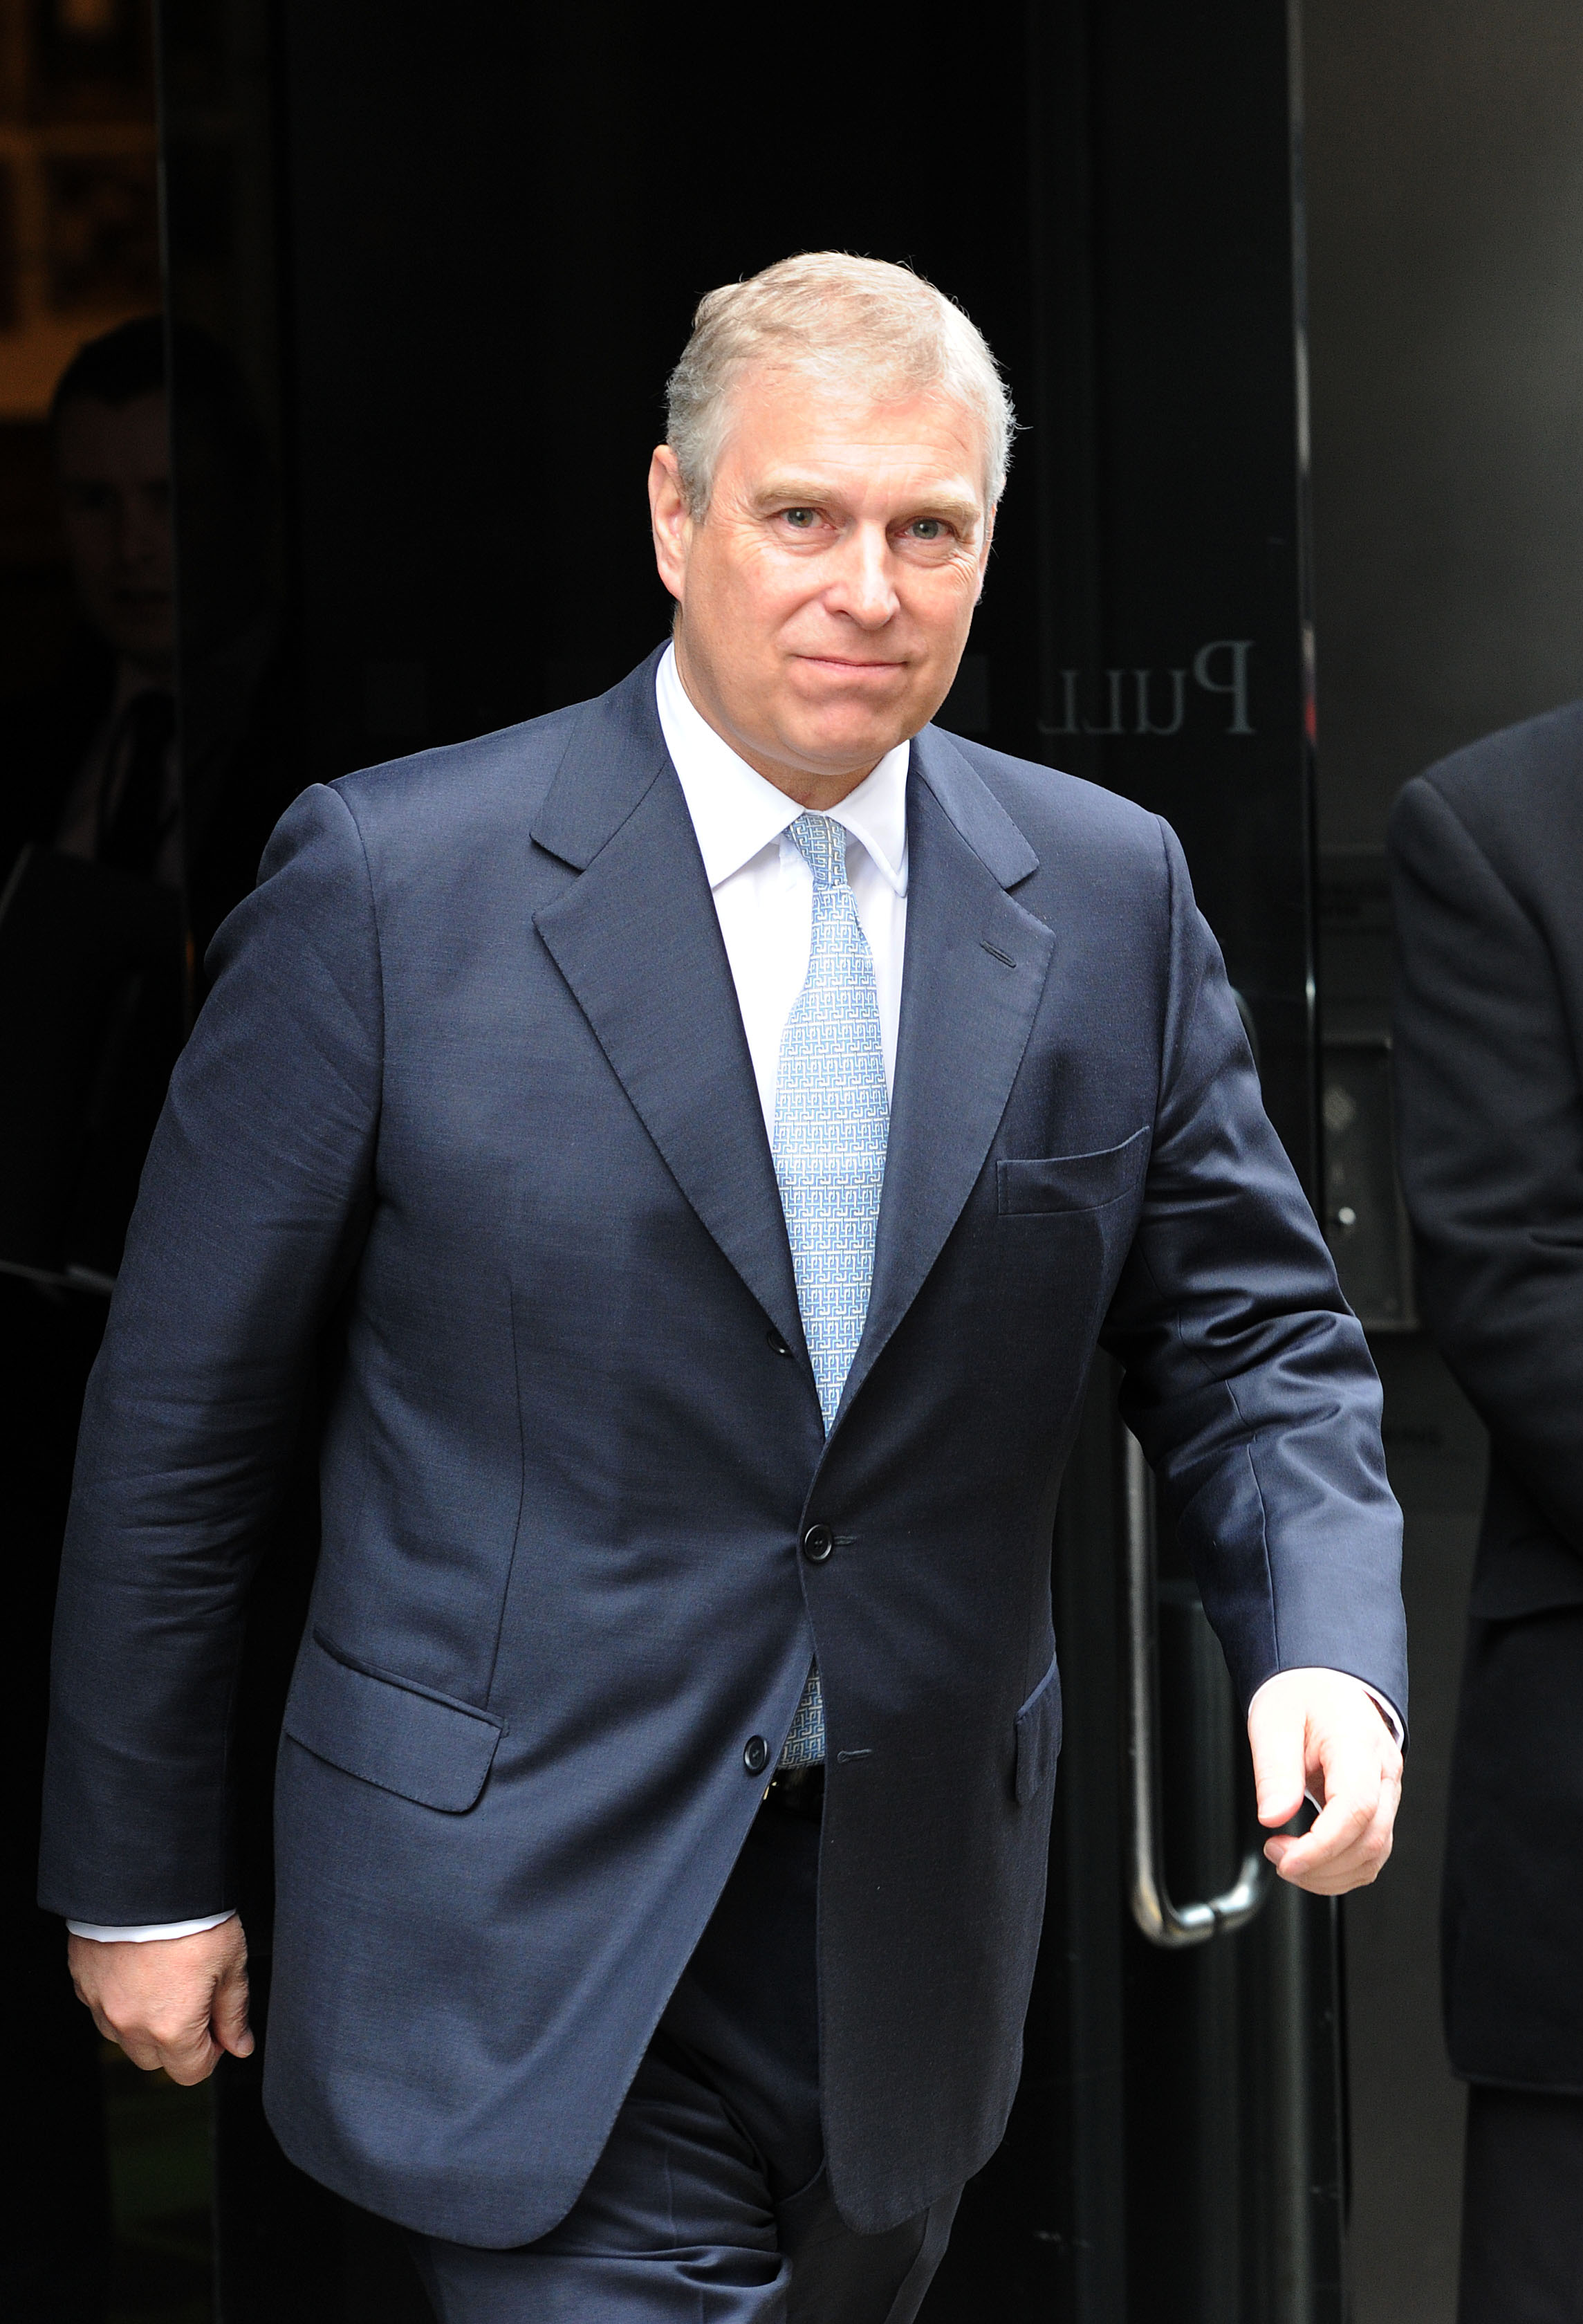 Buckingham Palace Issued Another Statement About Prince Andrew's Connection to Jeffrey Epstein